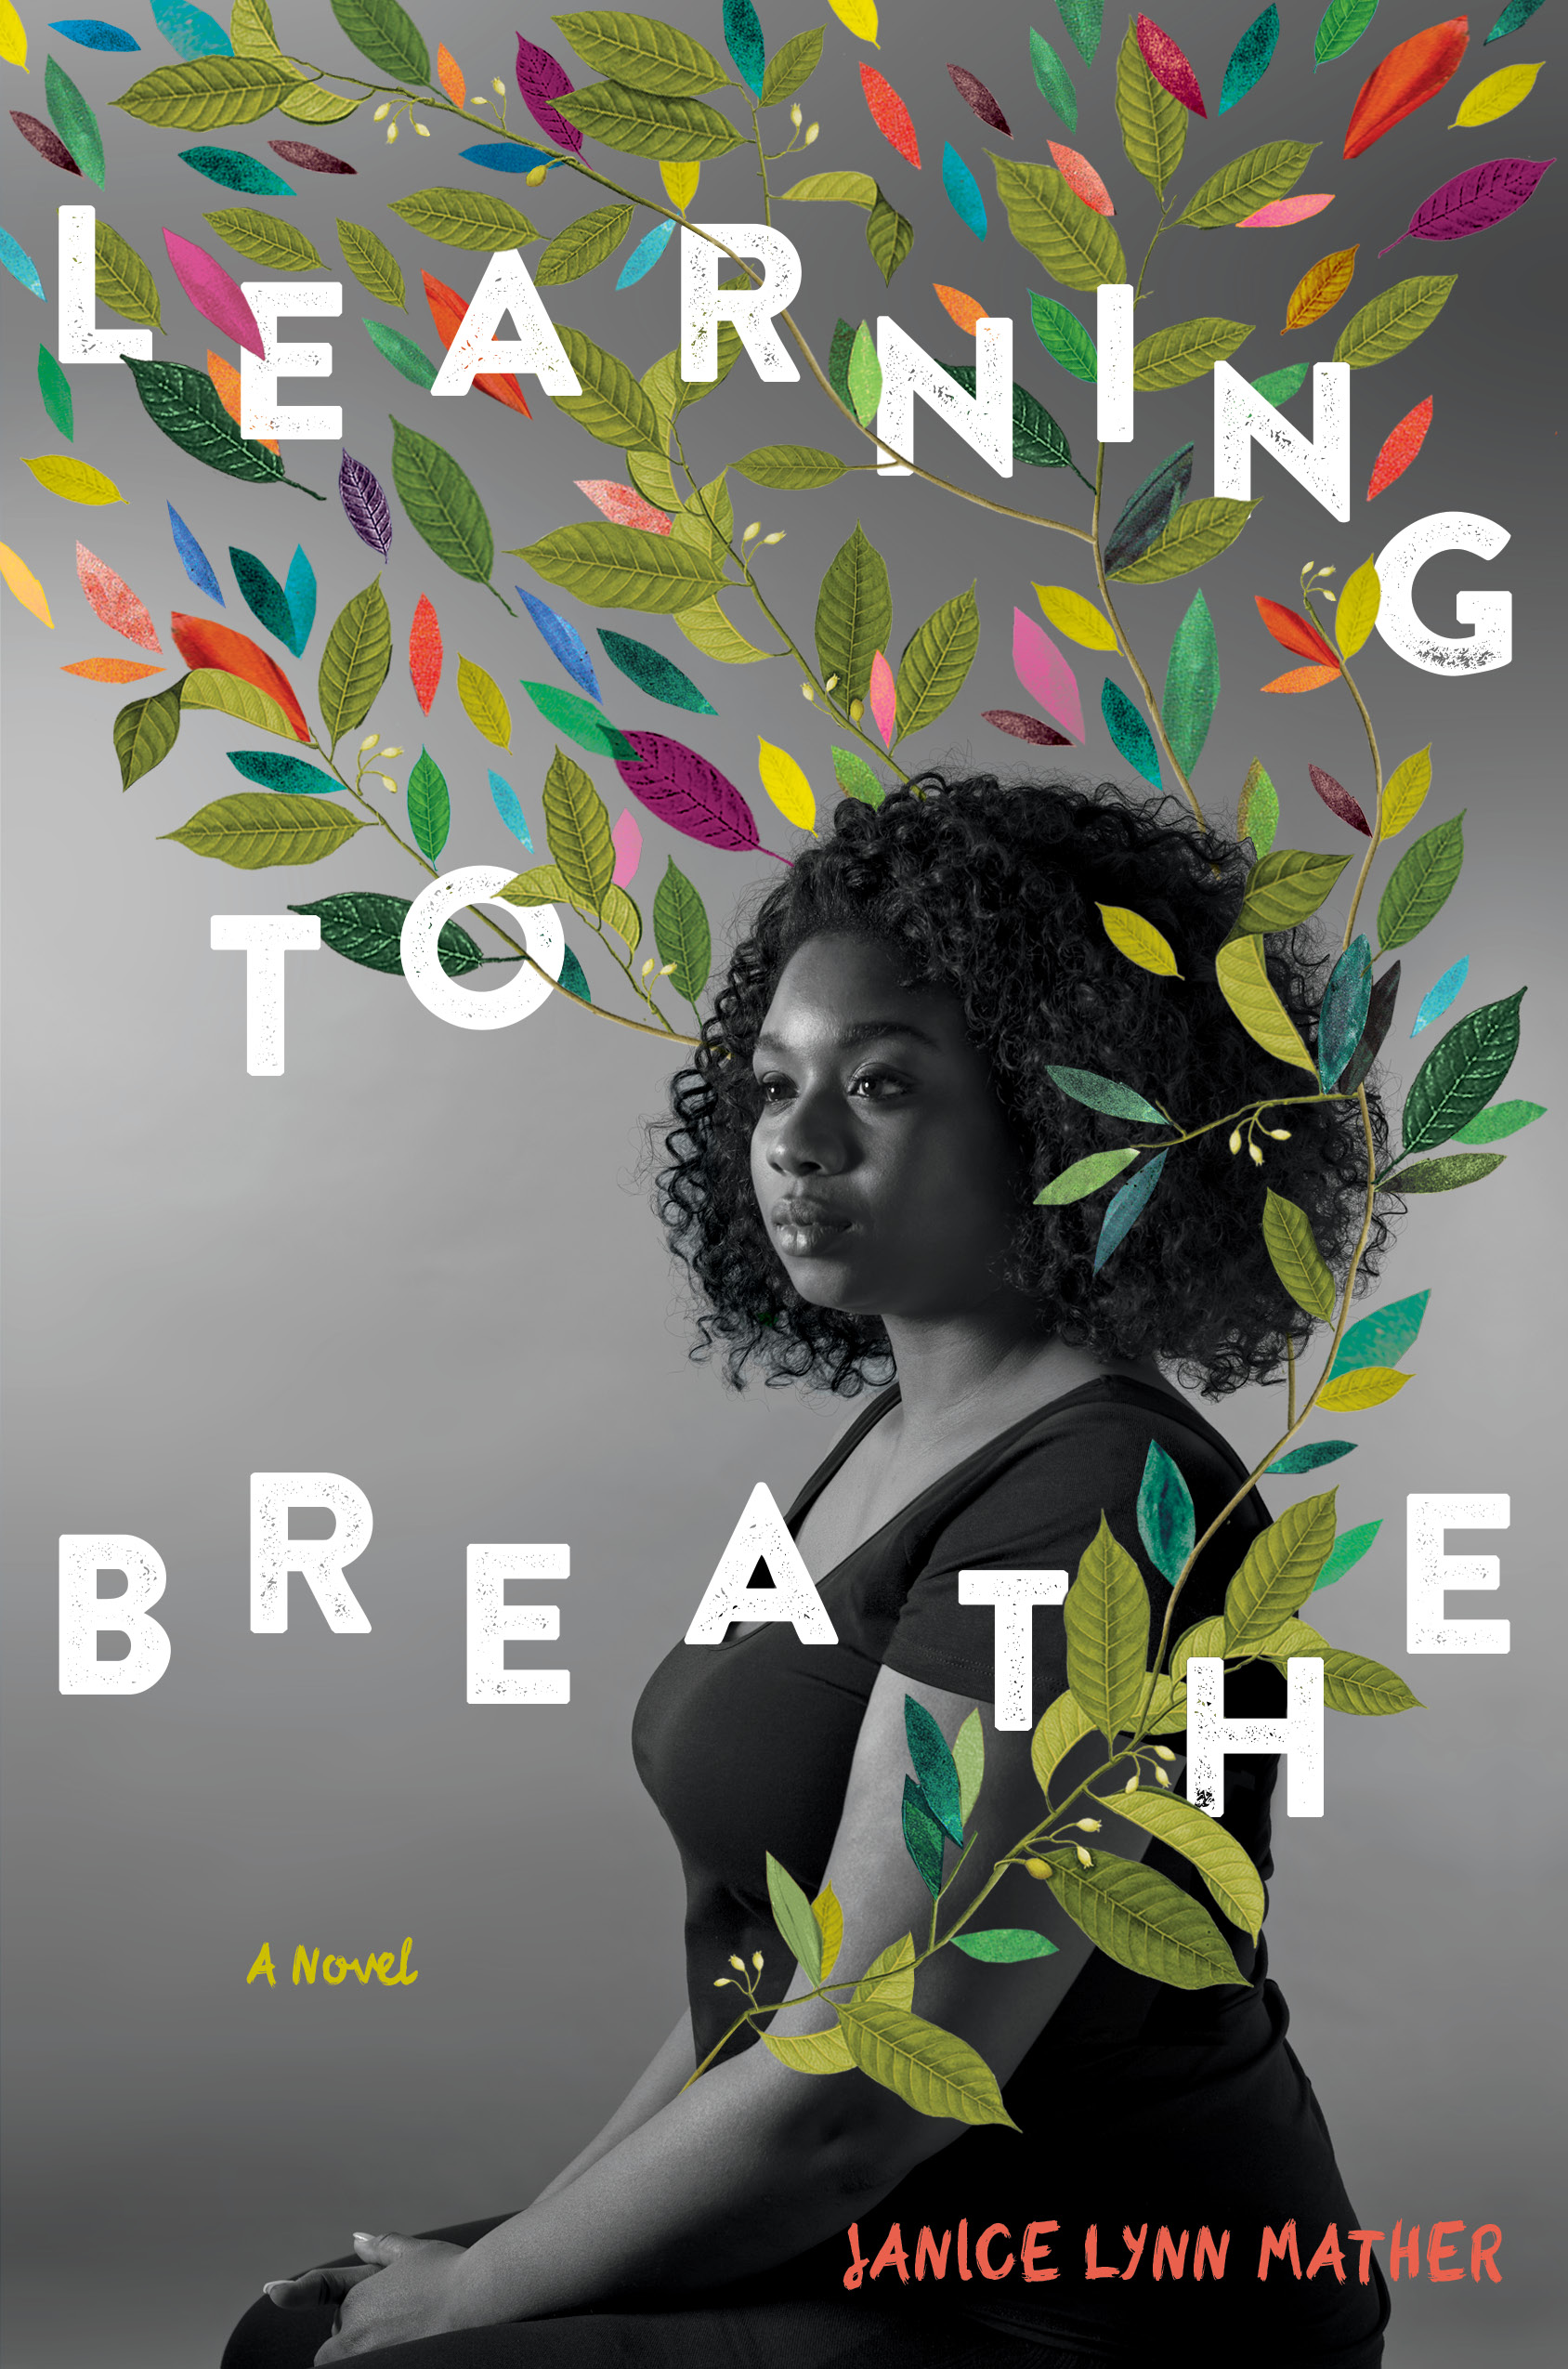 Mather, Janice Lynn - Learning to Breathe - Final cover.jpg